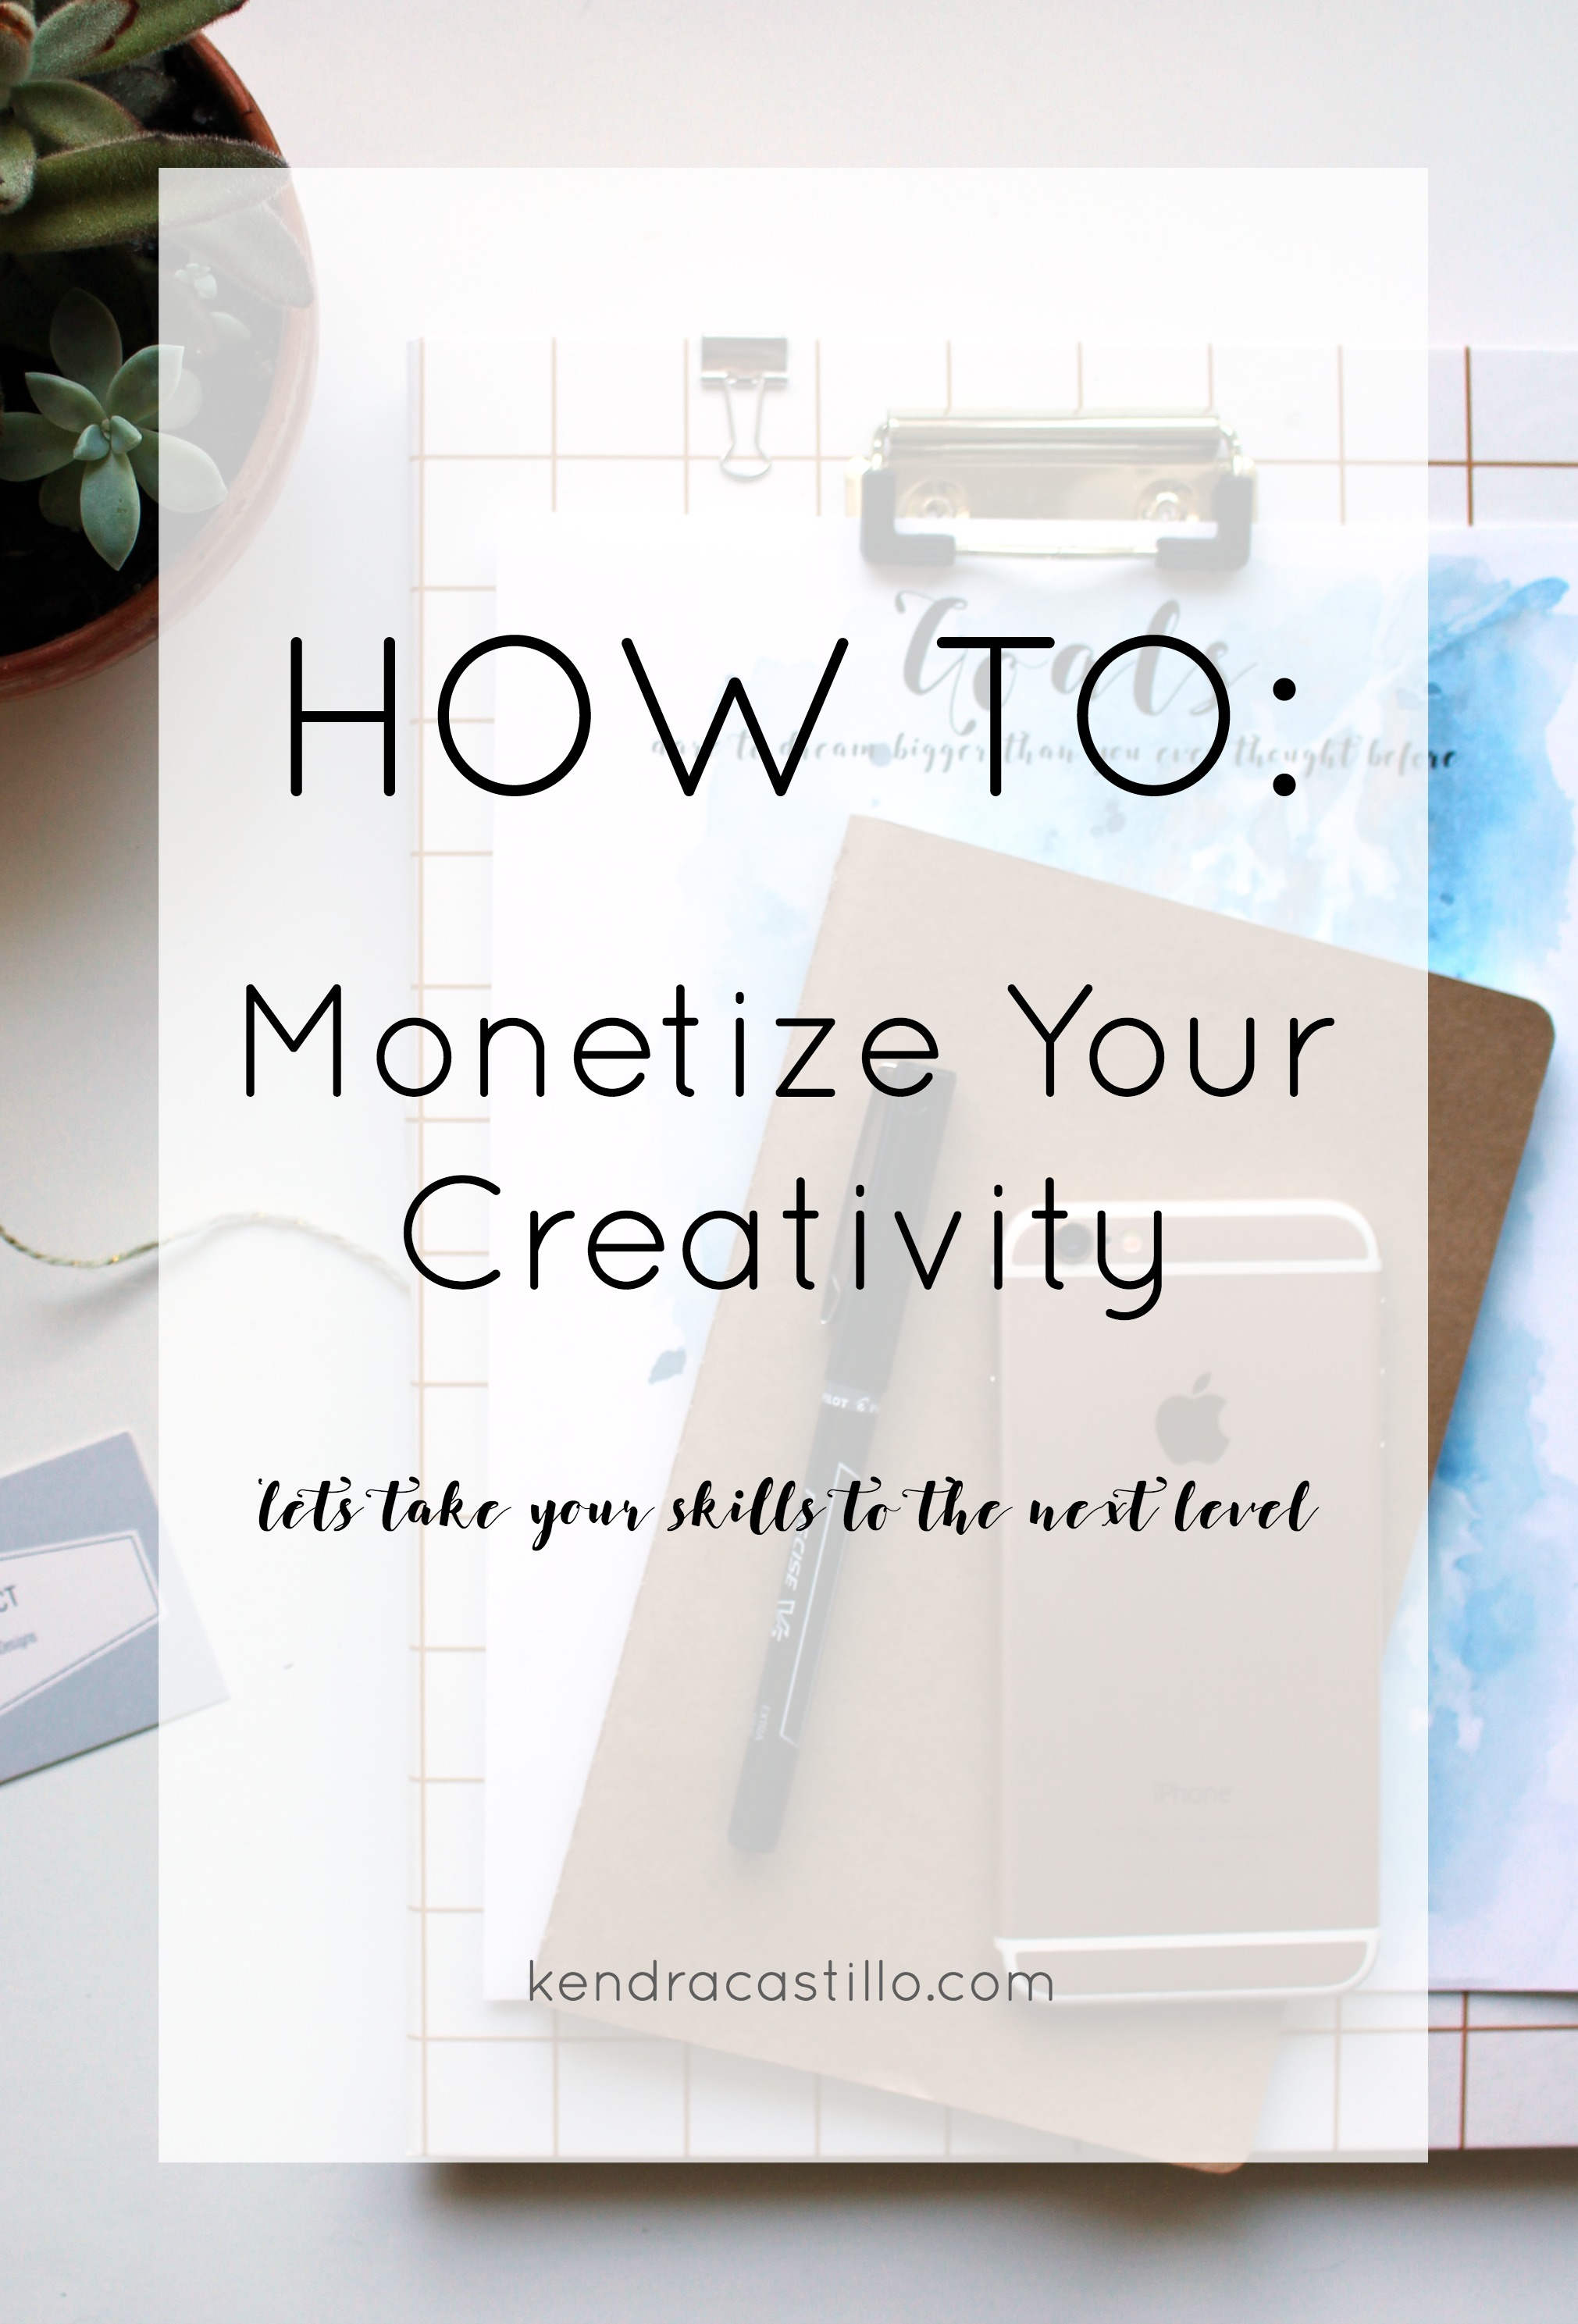 How to Monetize Your Creativity | Kendra Castillo